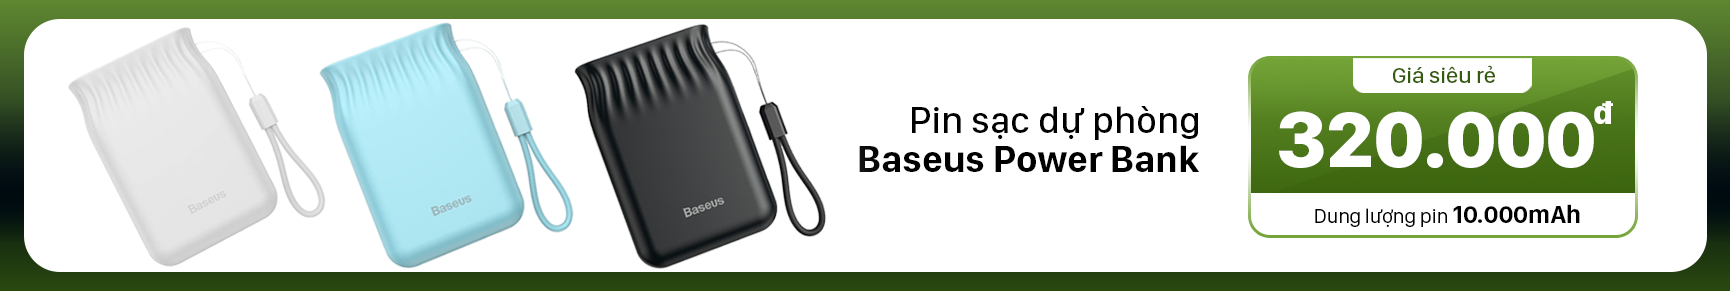 baseus power bank bs-10kp105